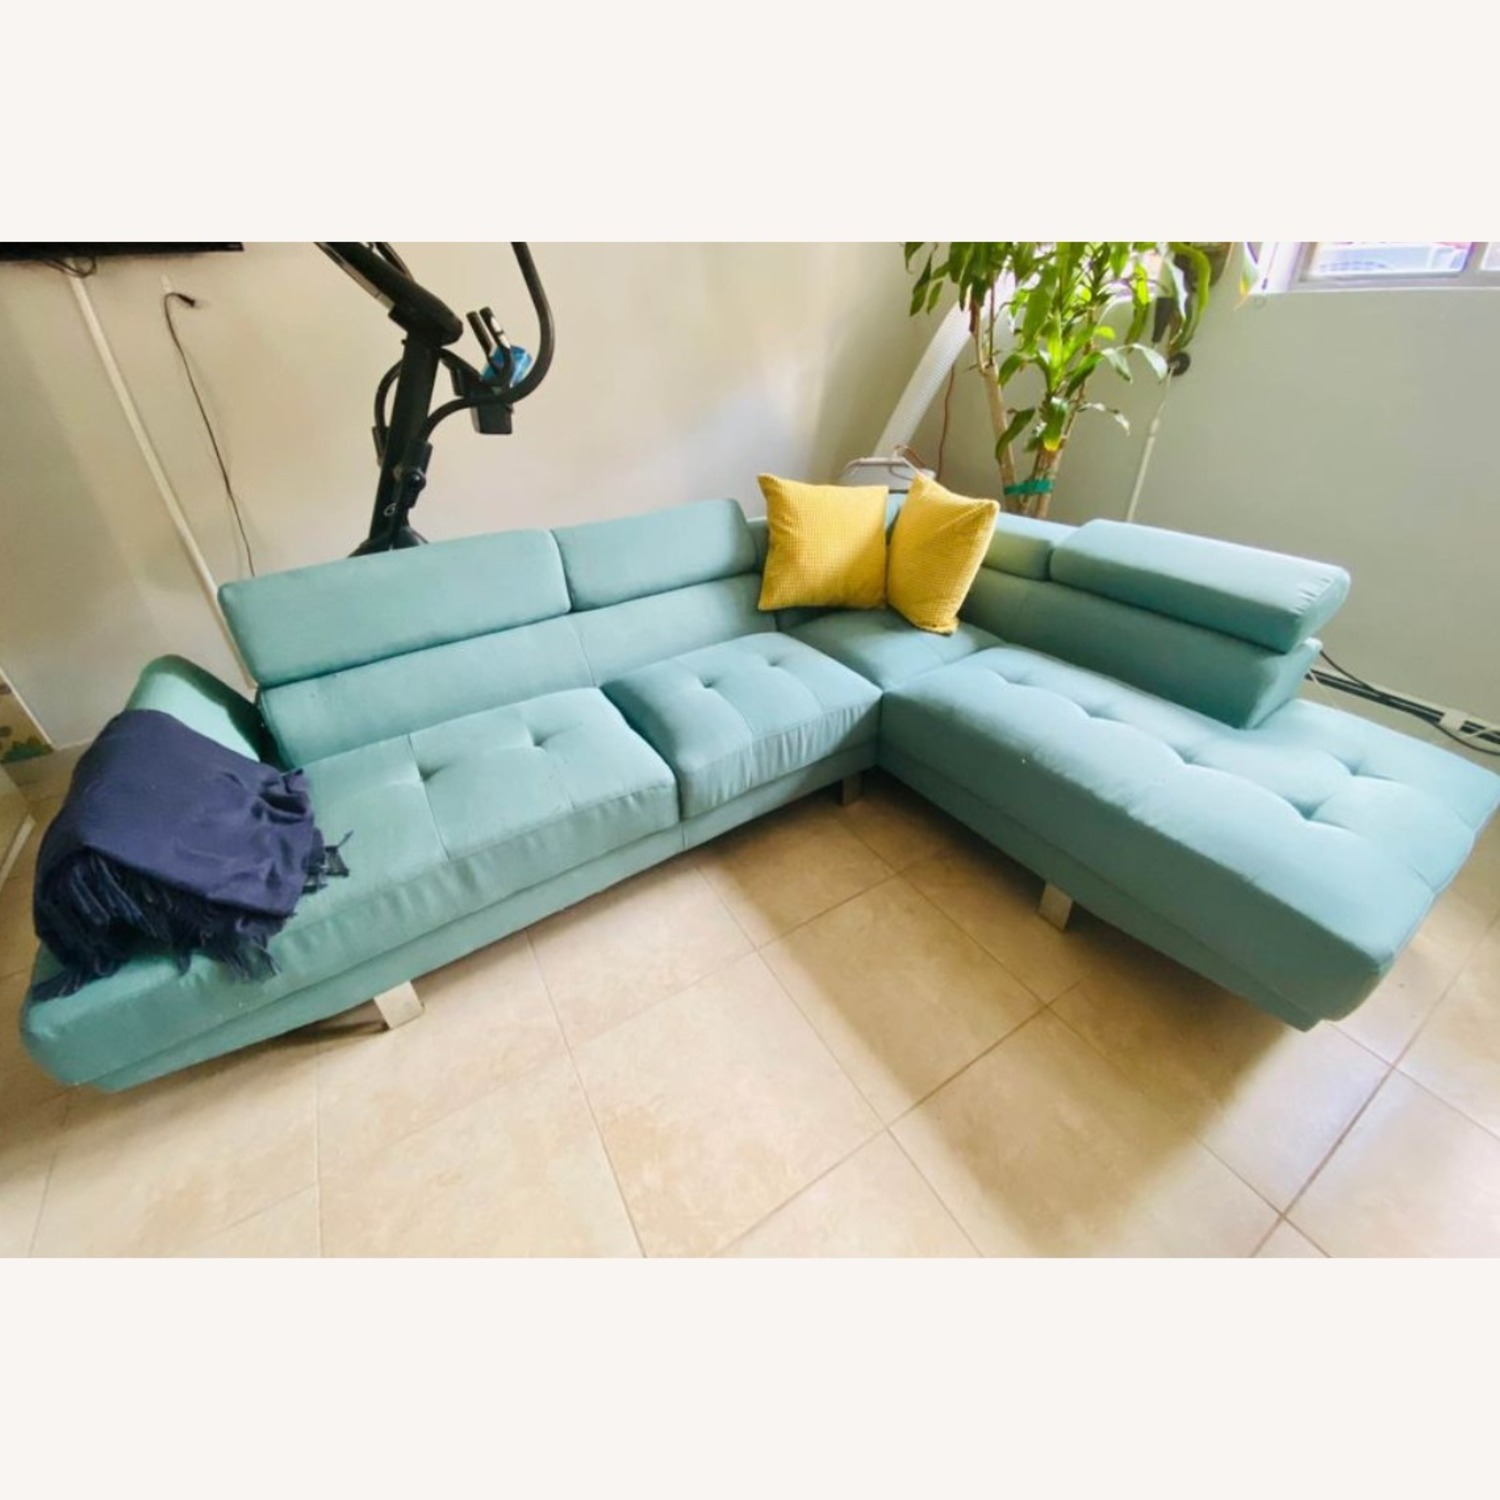 Wayfair Sectional Couch - image-2